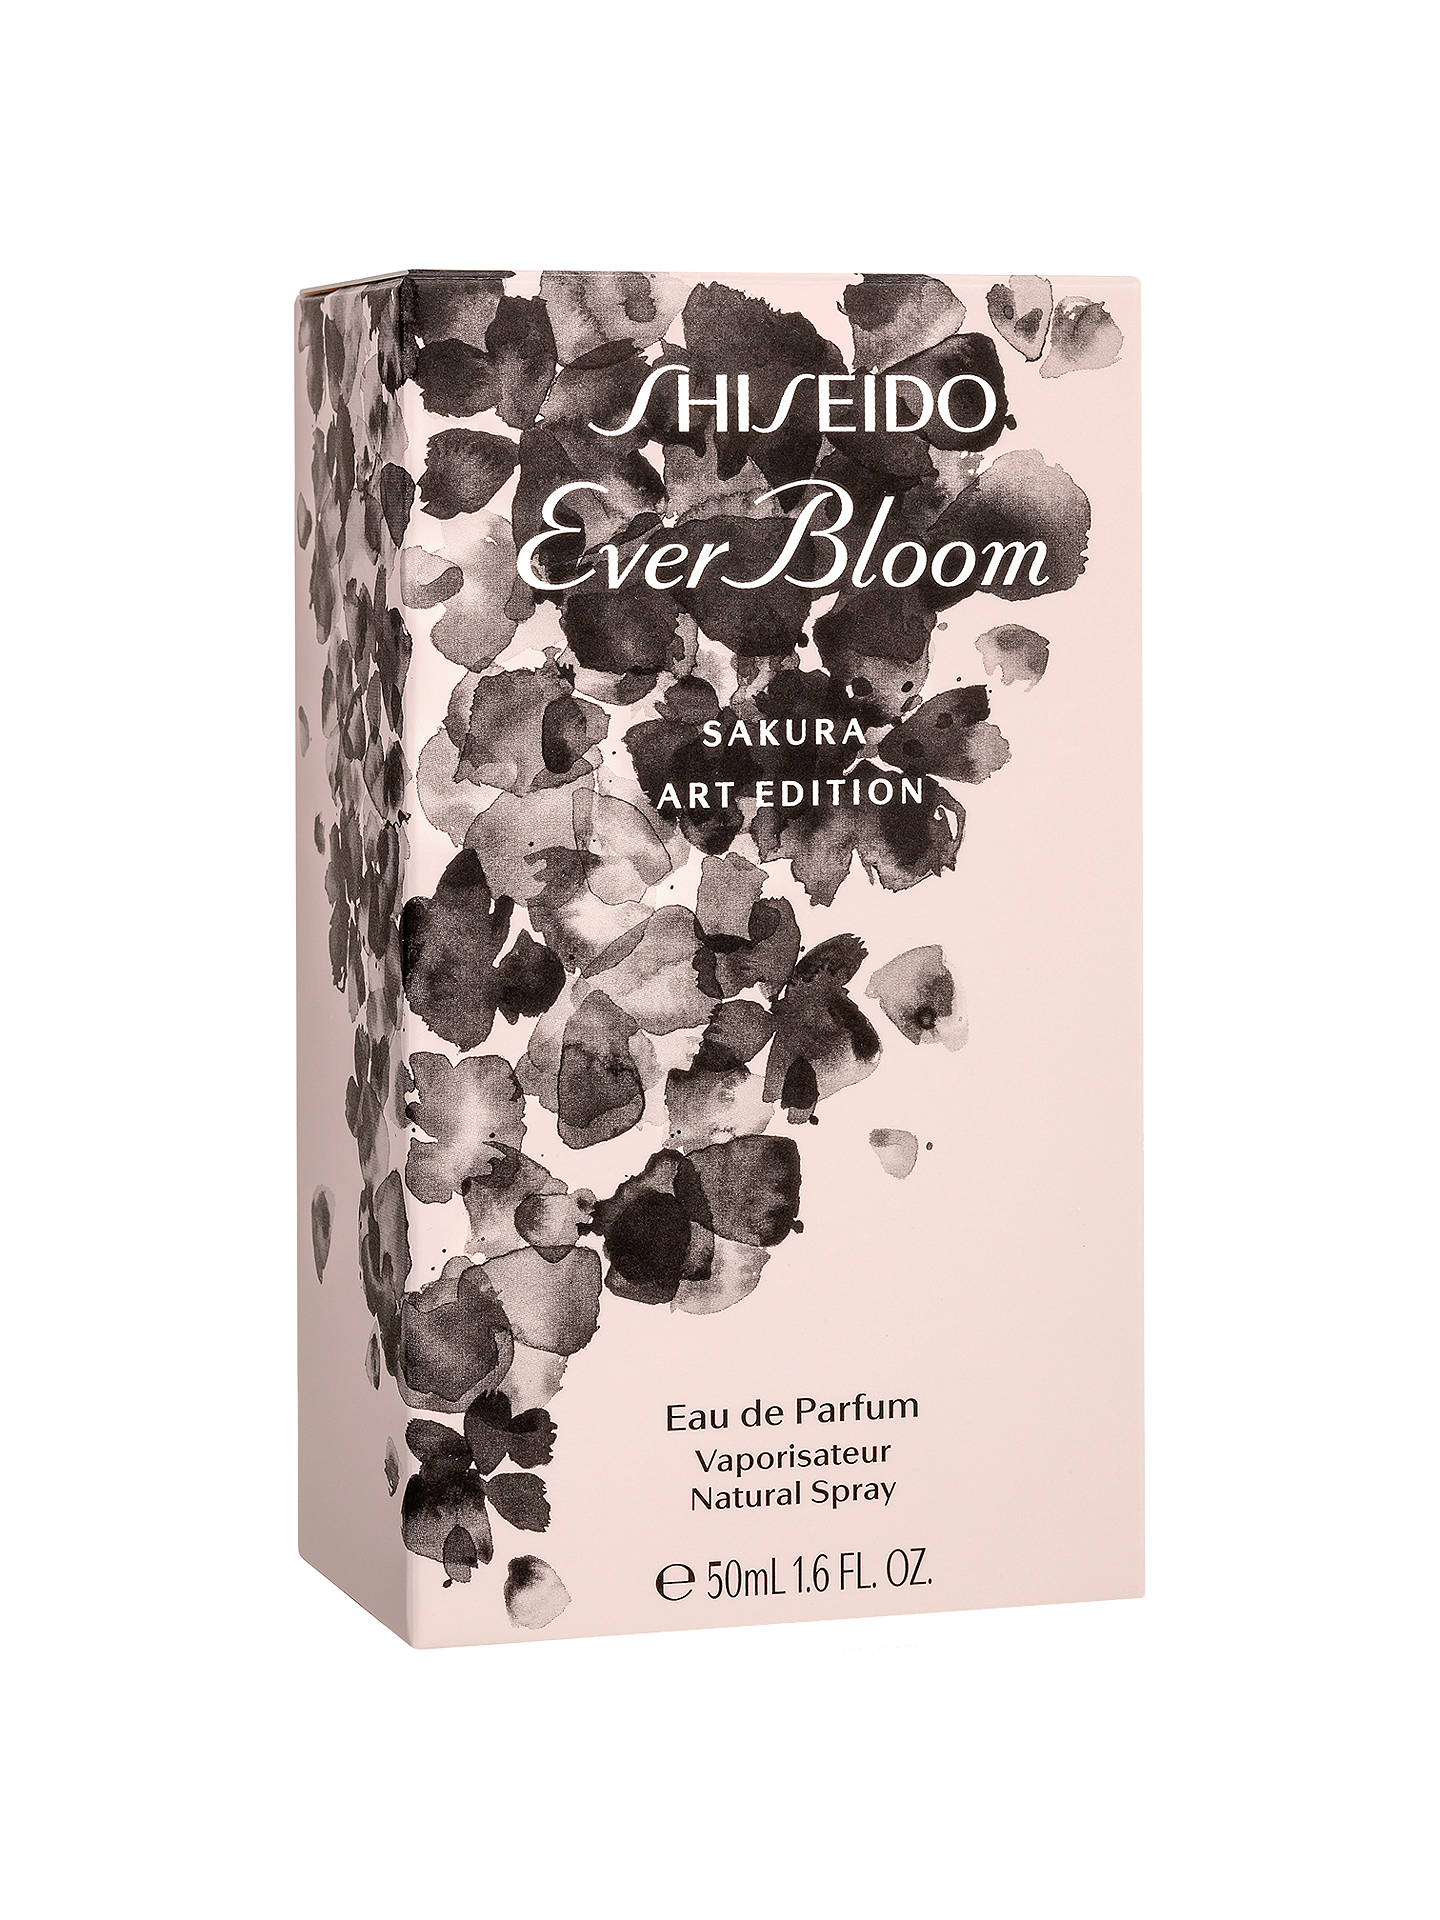 BuyShiseido Ever Bloom Sakura Art Edition Eau de Parfum, 30ml Online at johnlewis.com